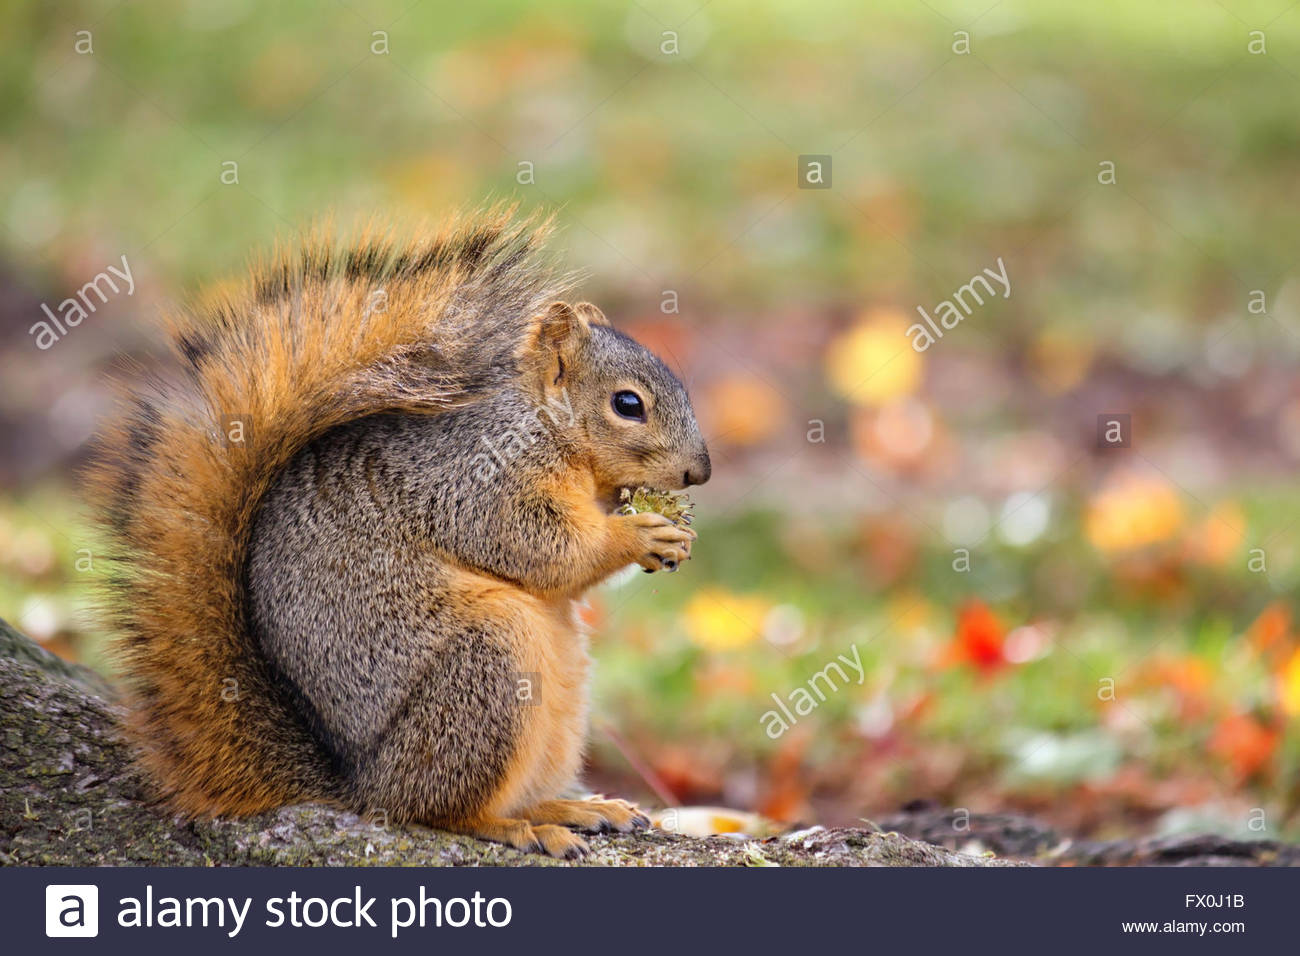 Fox squirrel nut manger en automne Photo Stock